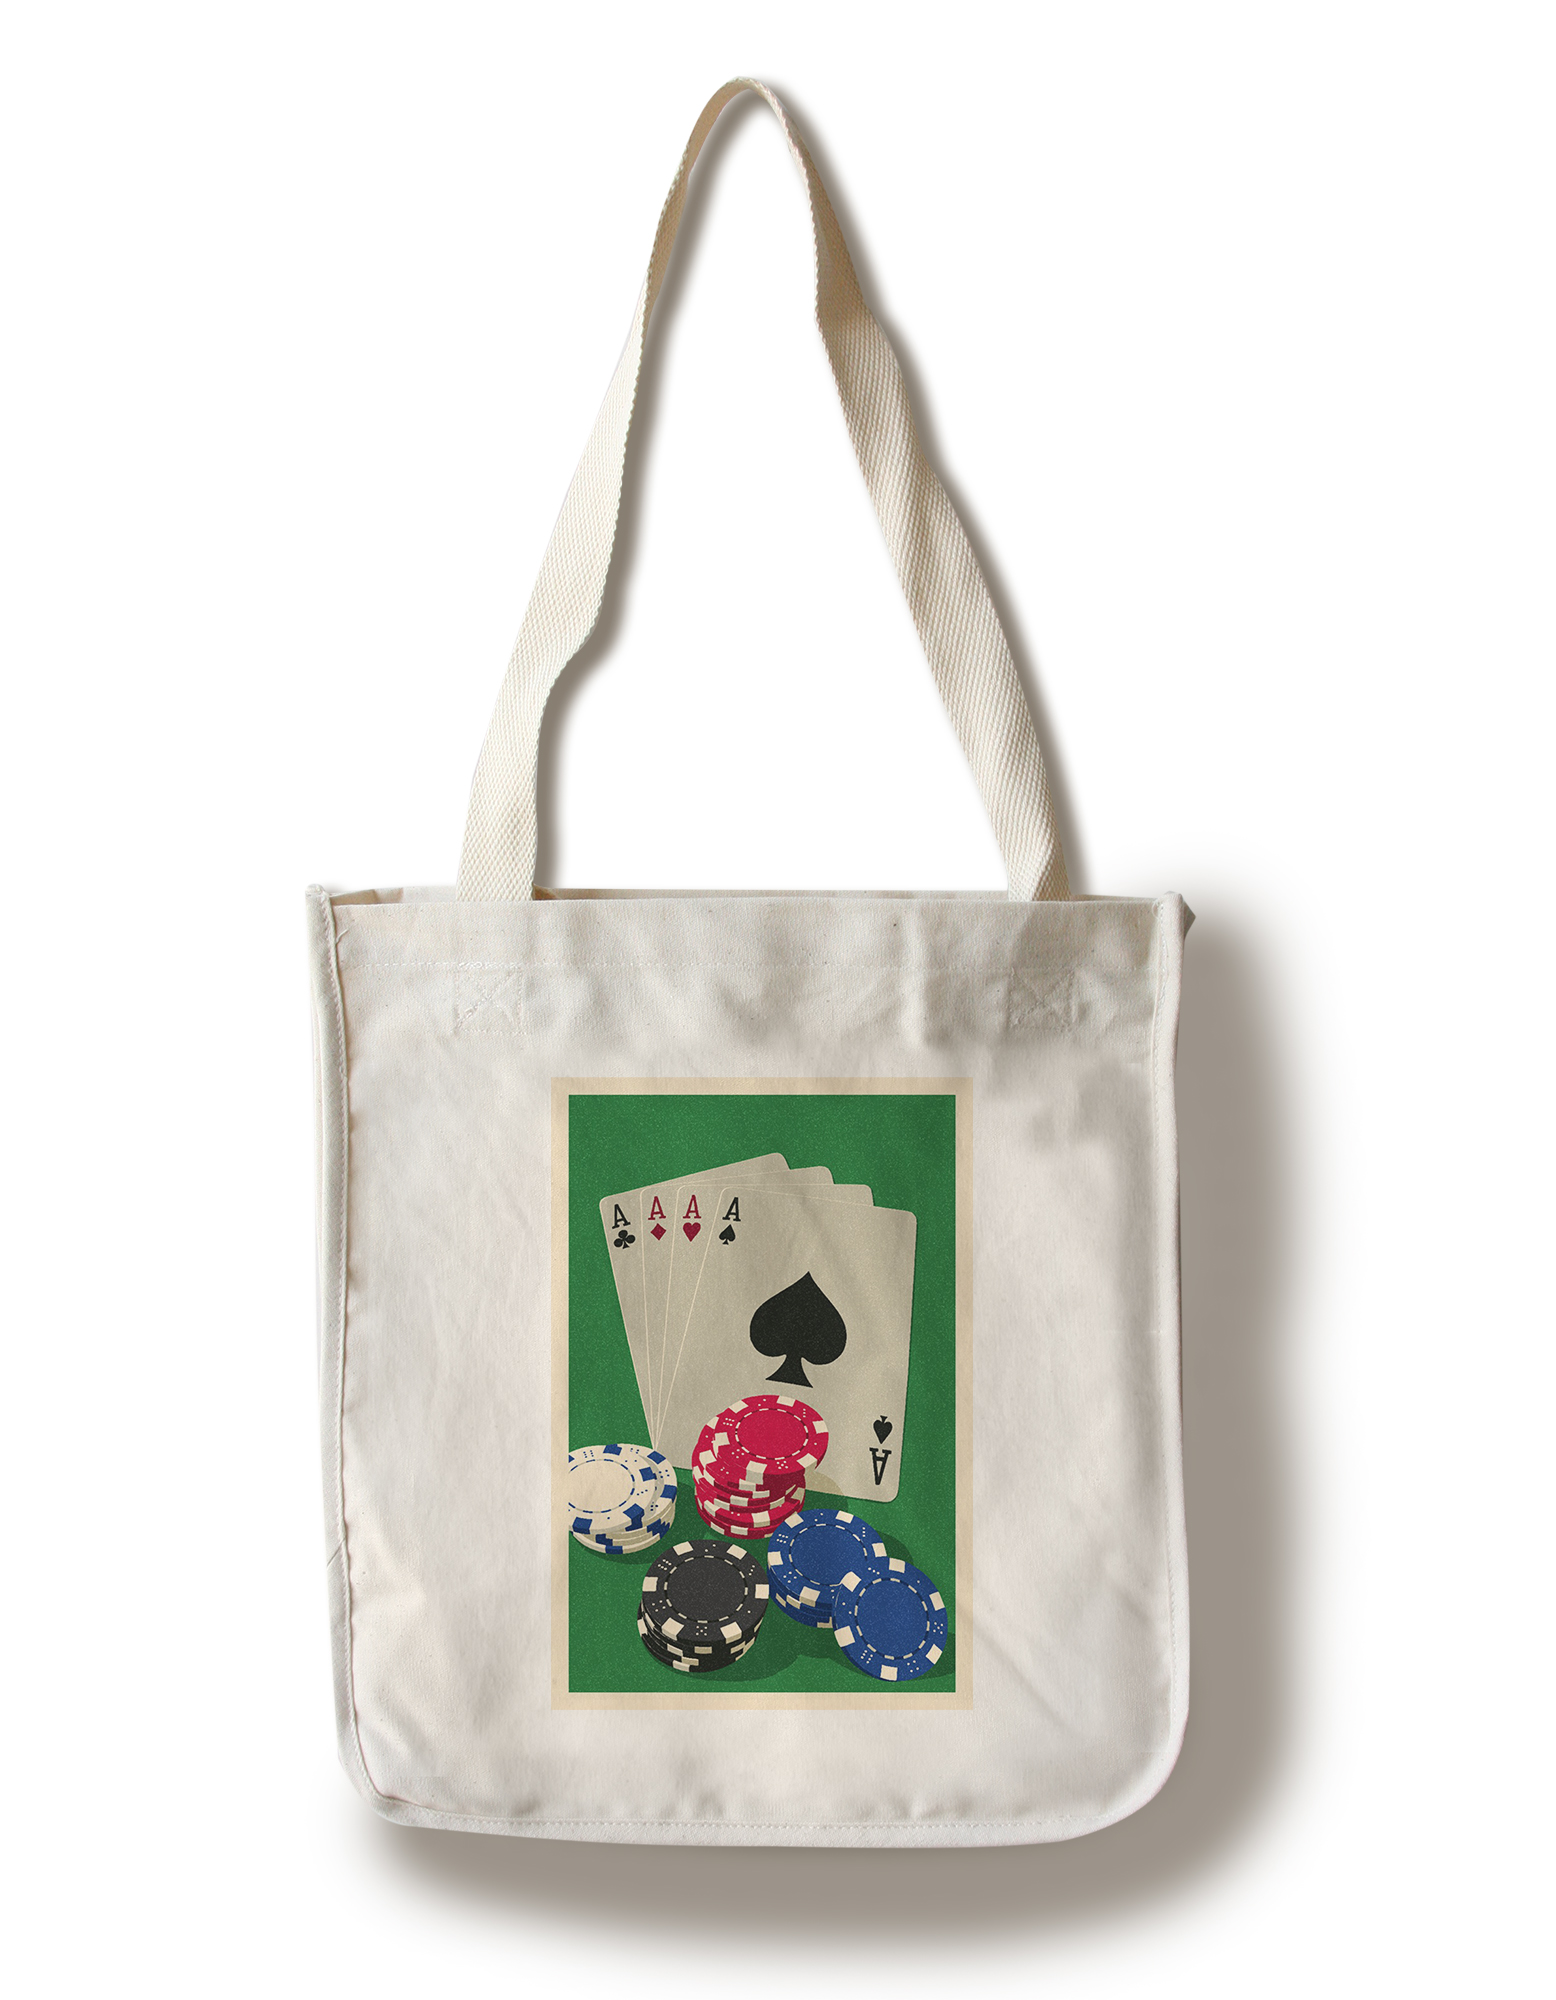 Poker Cards & Chips Letterpress Lantern Press Artwork (100% Cotton Tote Bag Reusable) by Lantern Press